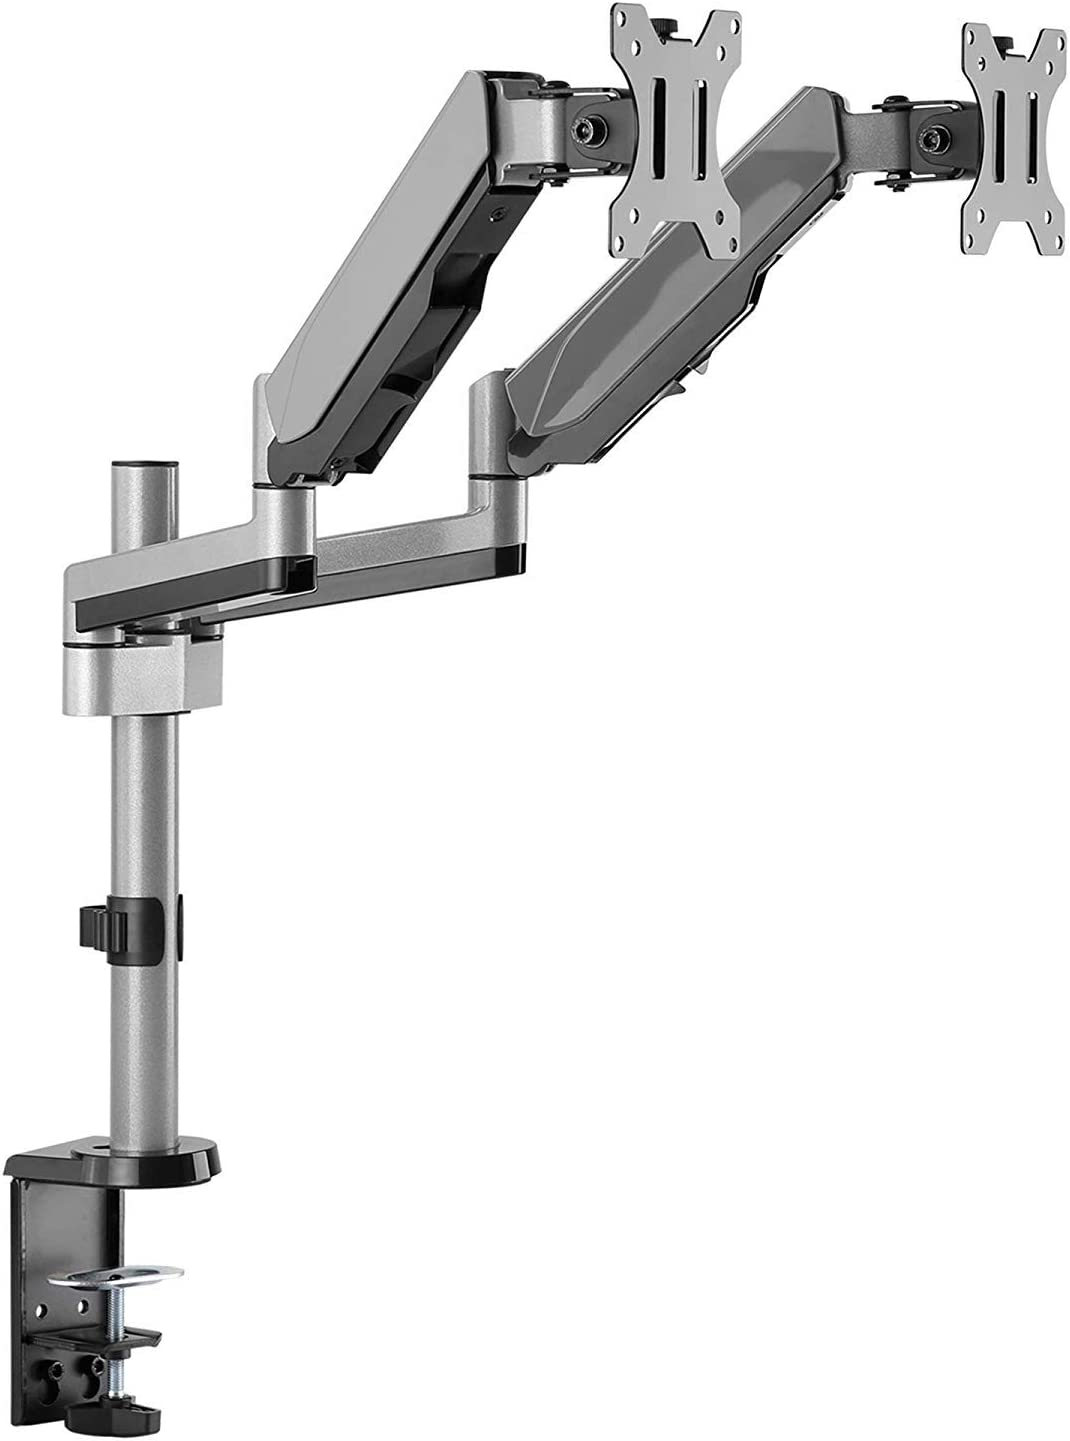 """AVLT-Power Dual 32"""" Monitor Long Pole Desk Stand - Mount Two 17.6 lbs Computer Monitors on 2 Full Motion Adjustable Arms - Organize Your Work Surface with Ergonomic Viewing Angle VESA Monitor Riser"""